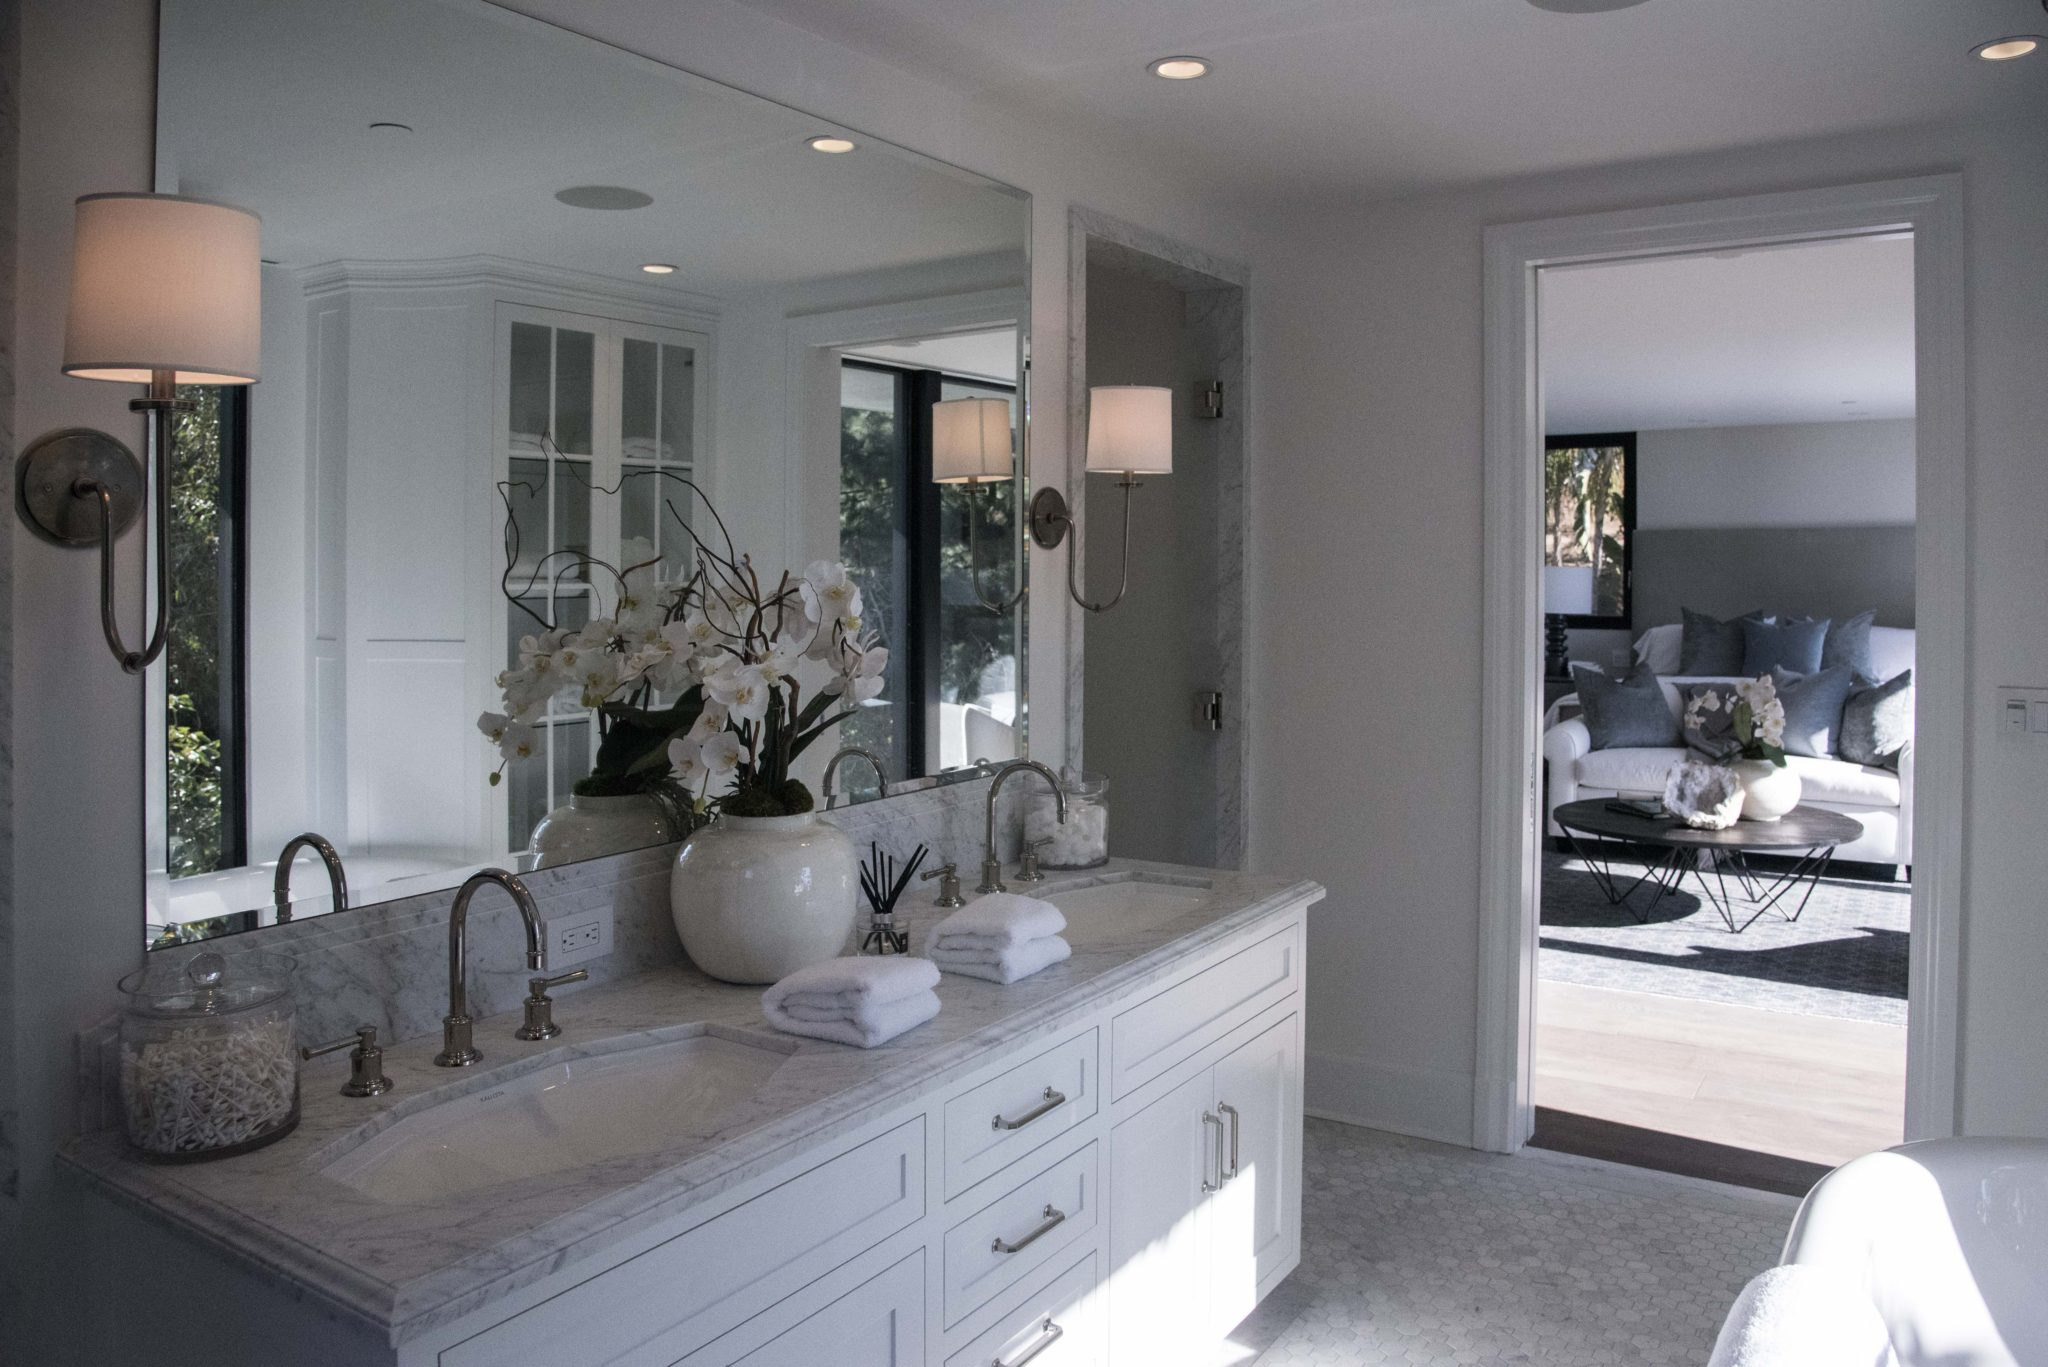 Master Bathroom downscaled